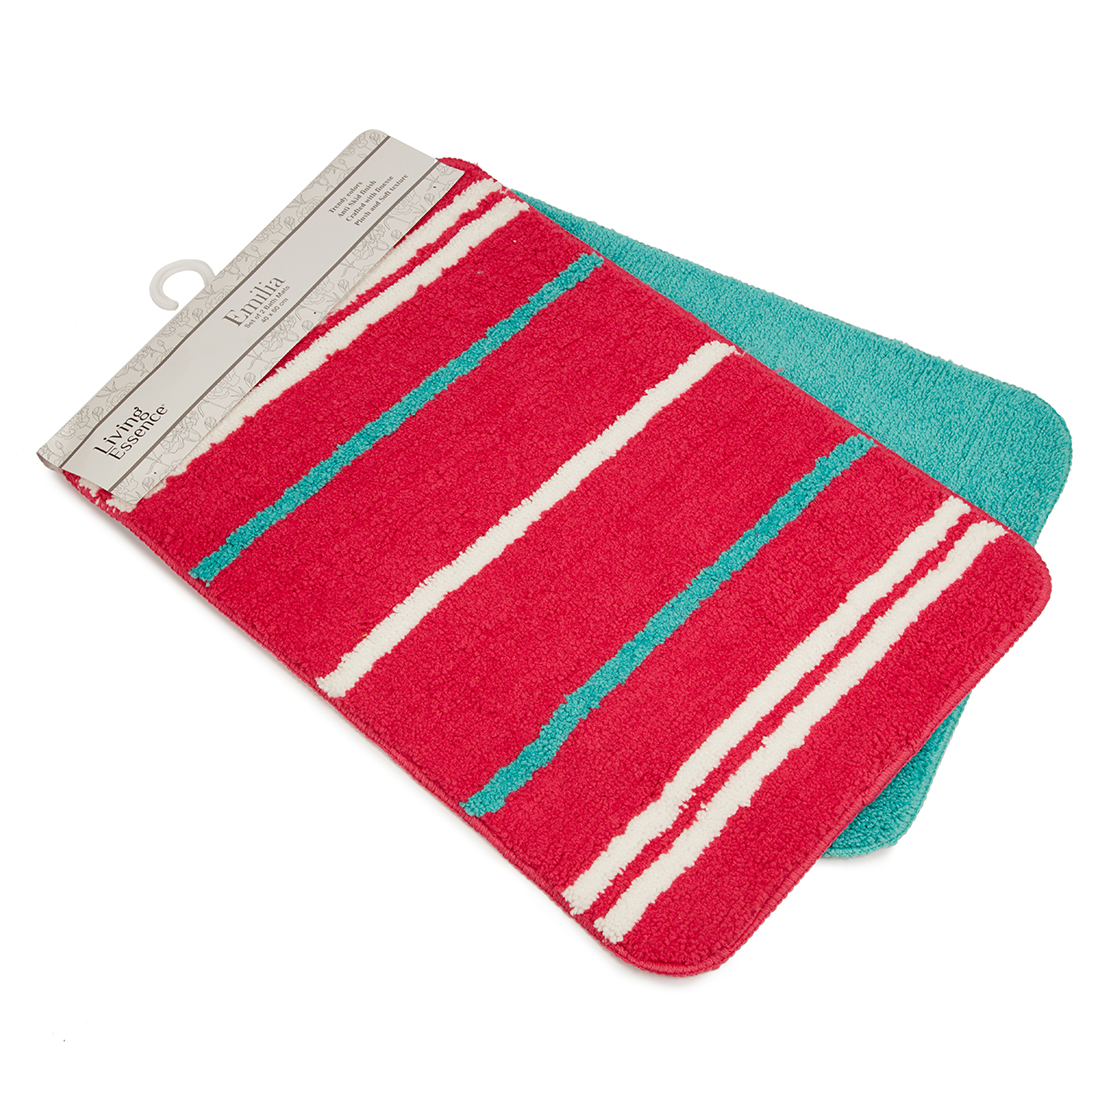 Set of 2 Bathmats Pink Teal Bath Mats in Pink Teal Colour by Living Essence